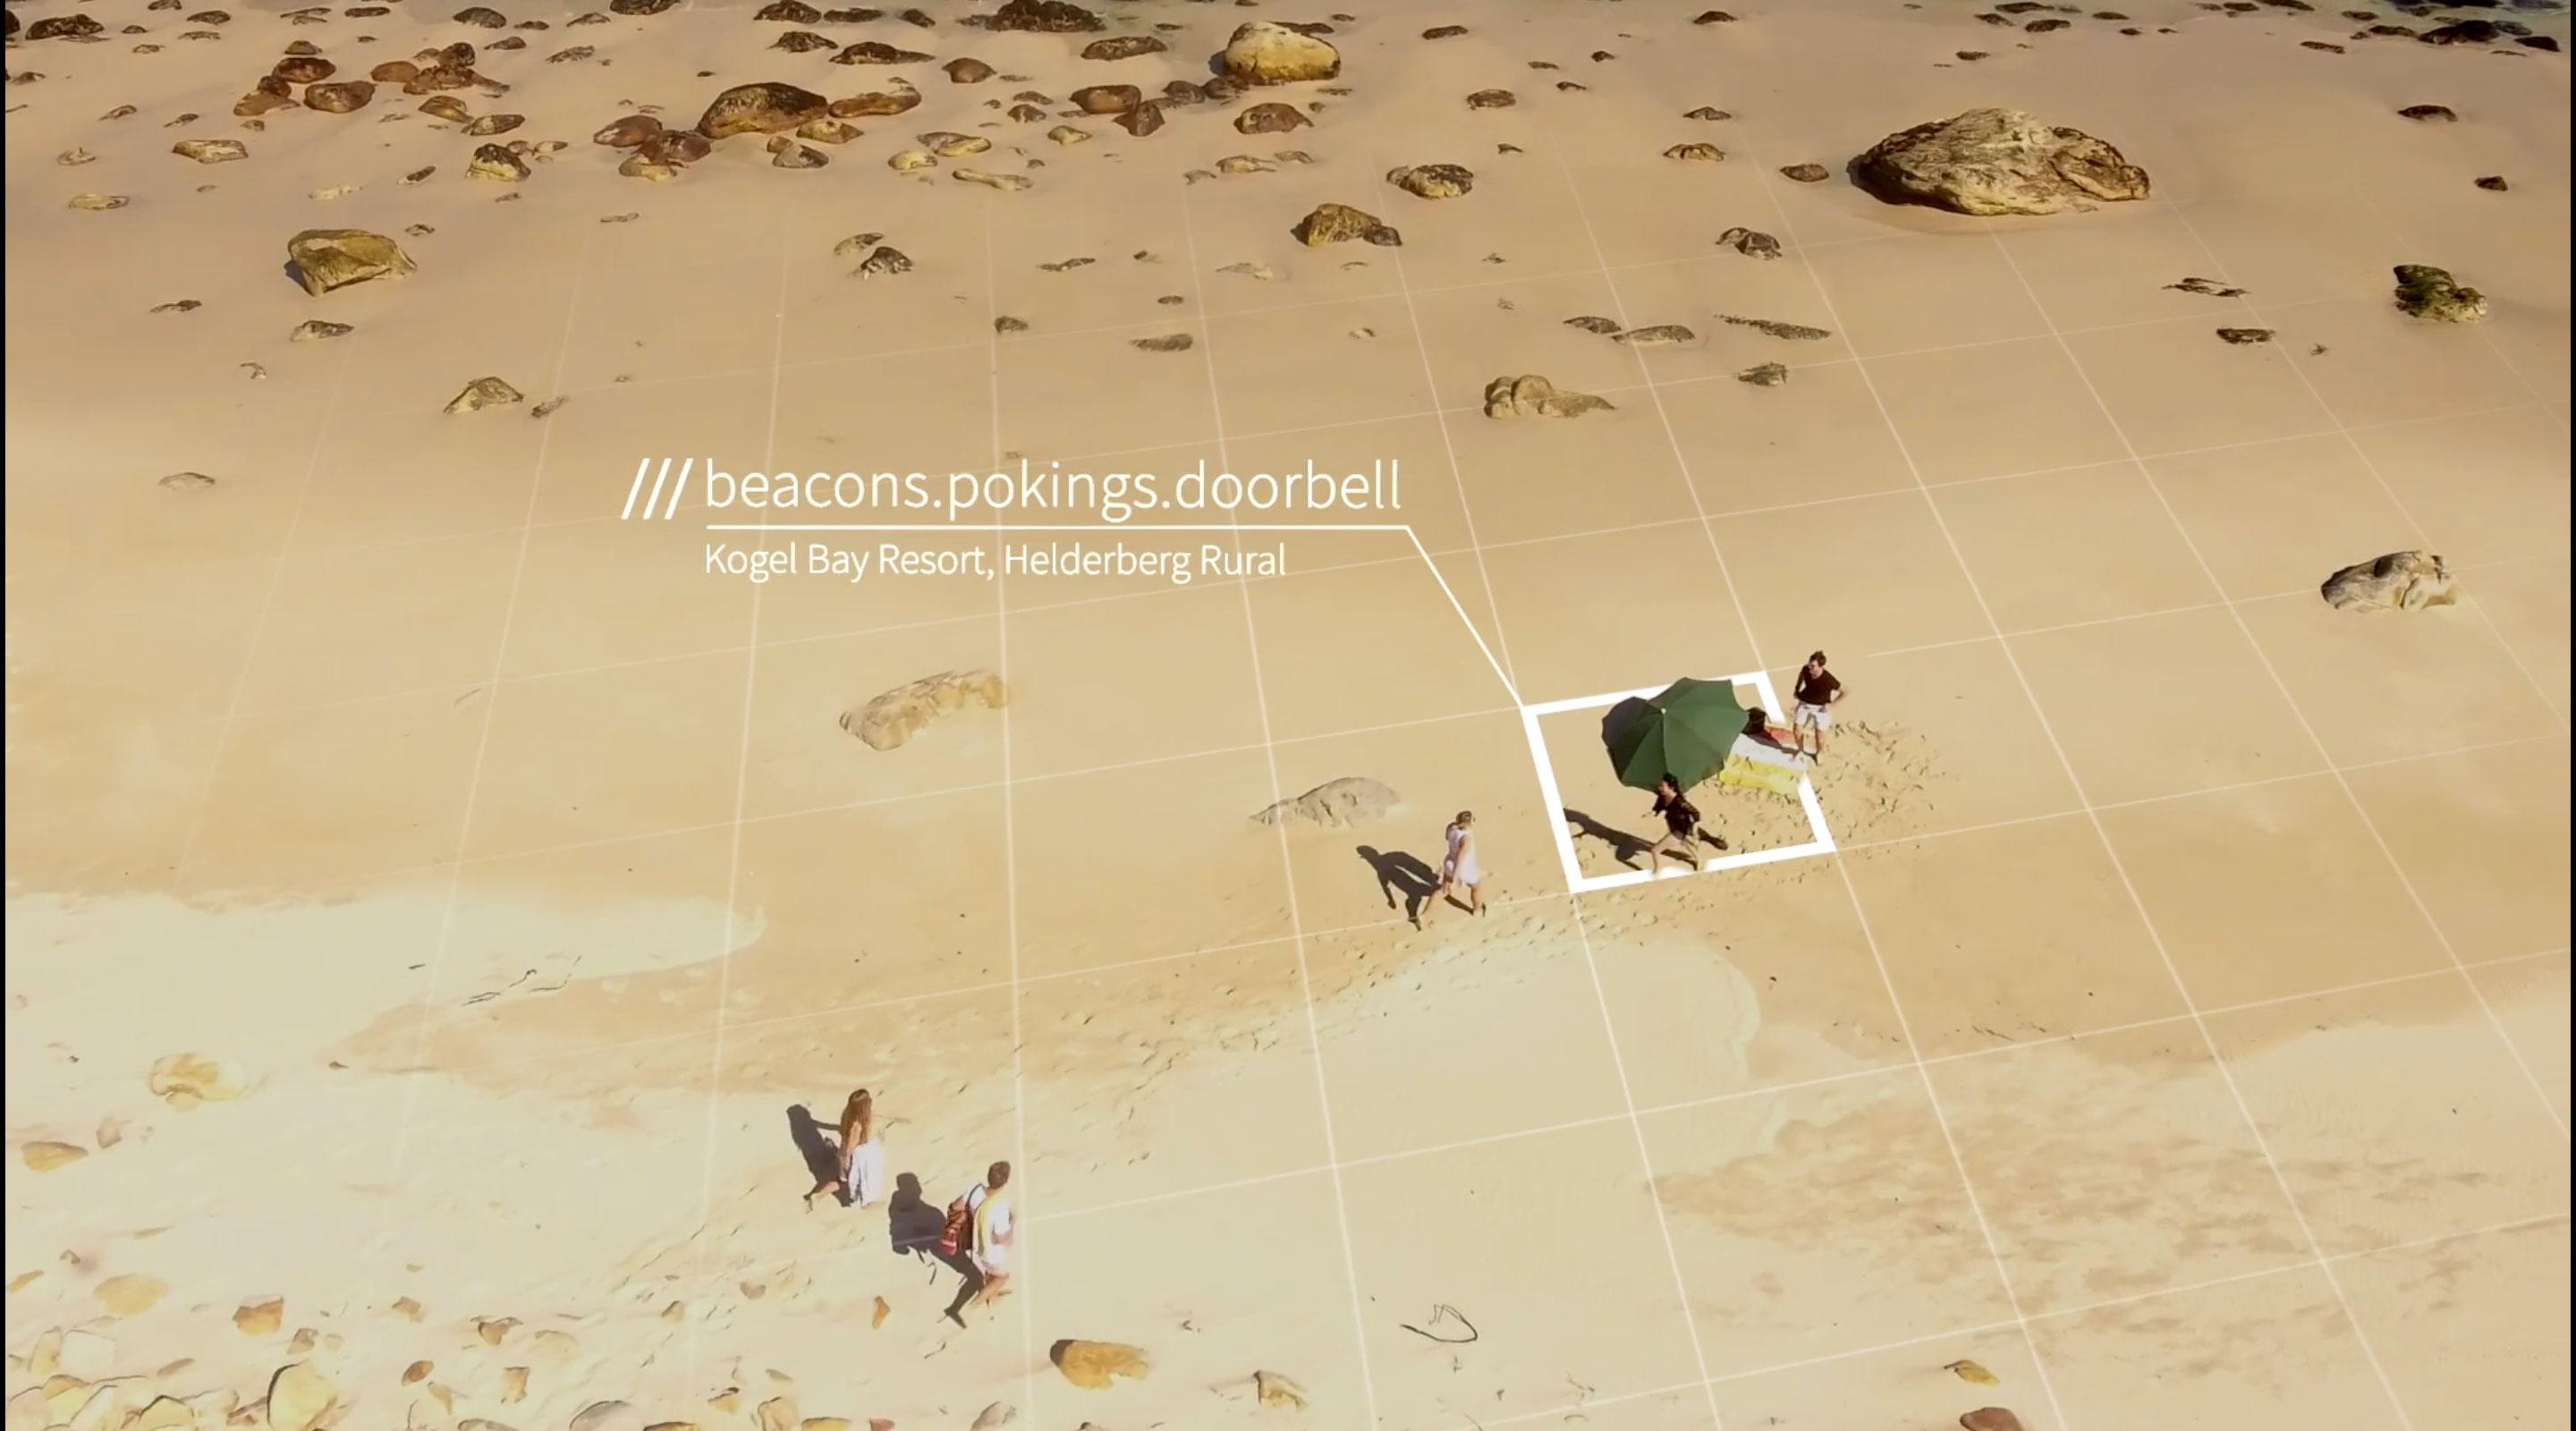 Want to meet at an obscure spot on a South African beach? What3words has a label for it.